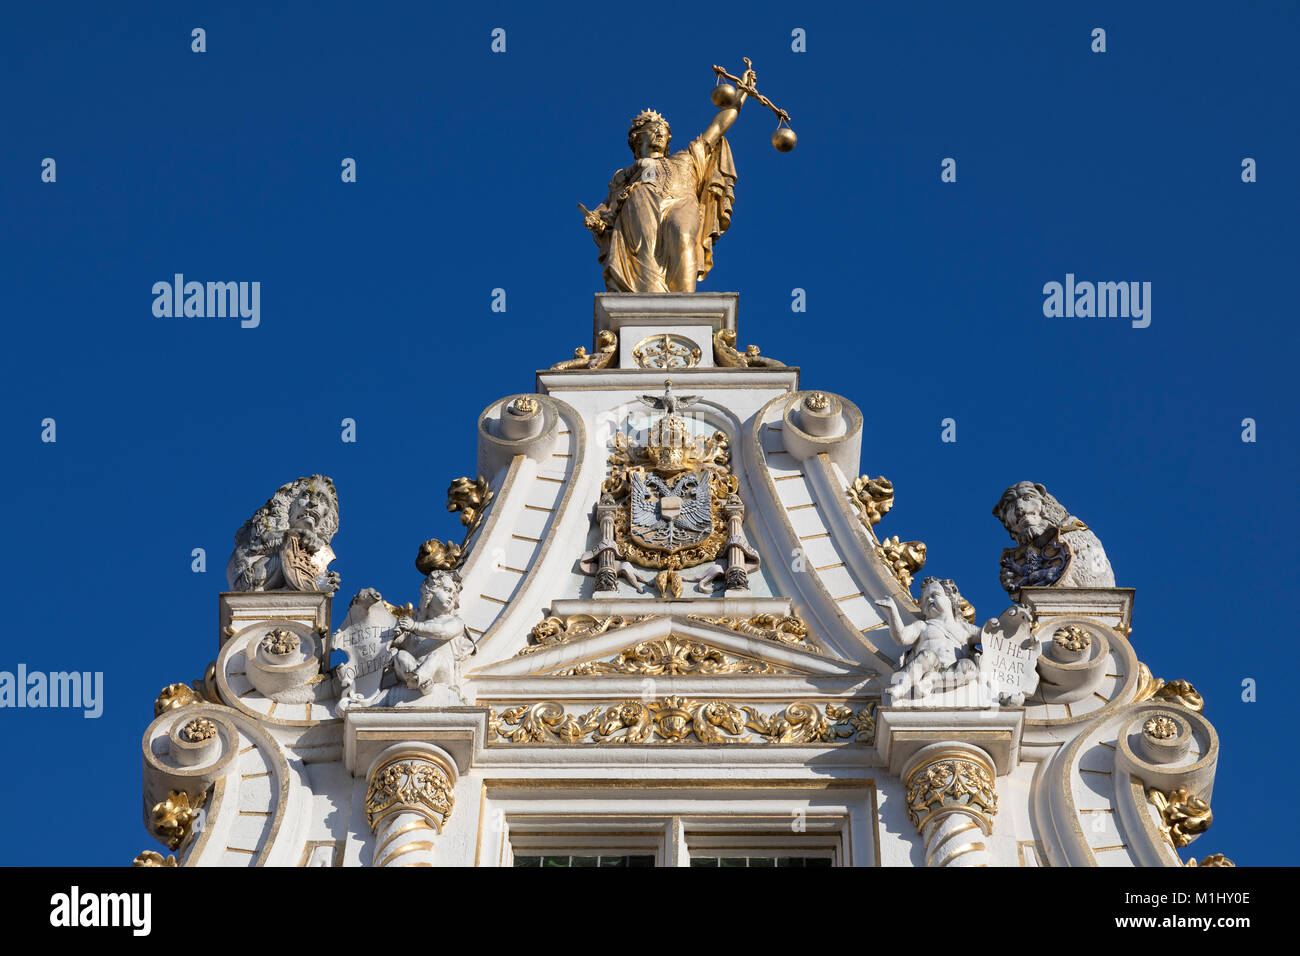 Detail on the Stadhuis van Brugge (Bruges City Hall) in the city of Bruges in Belgium. It is located in Burg Square, - Stock Image